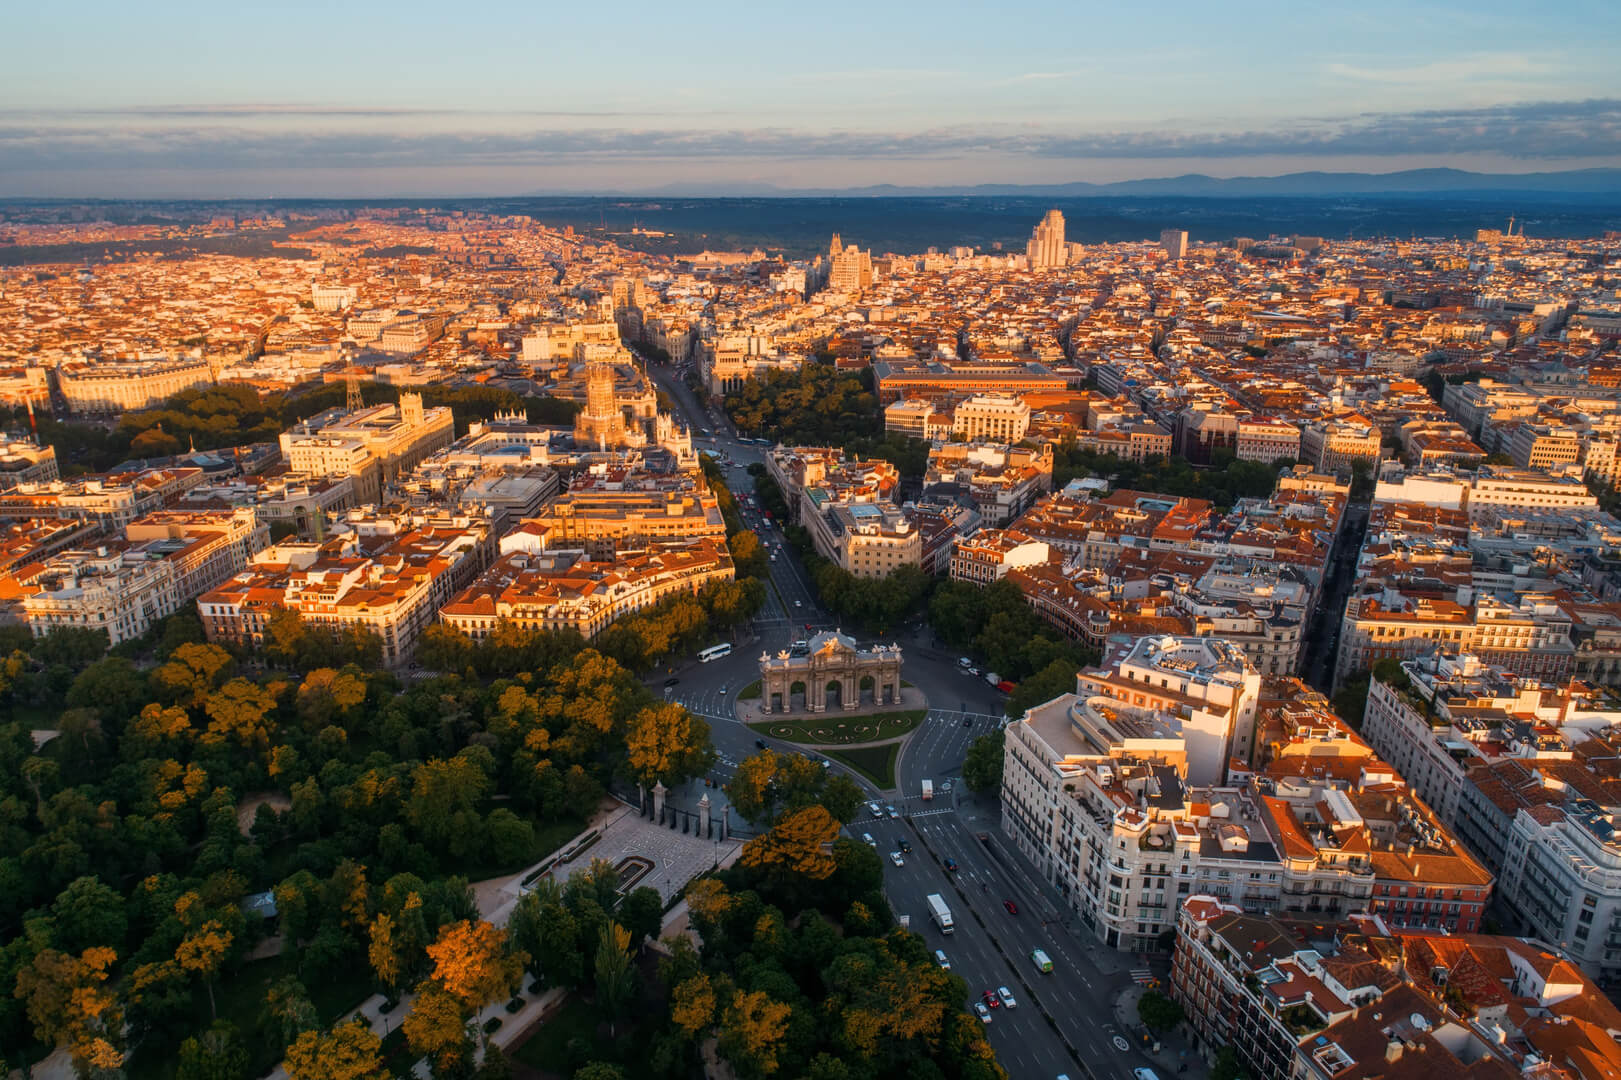 Madrid aerial view with historical buildings in Spain.